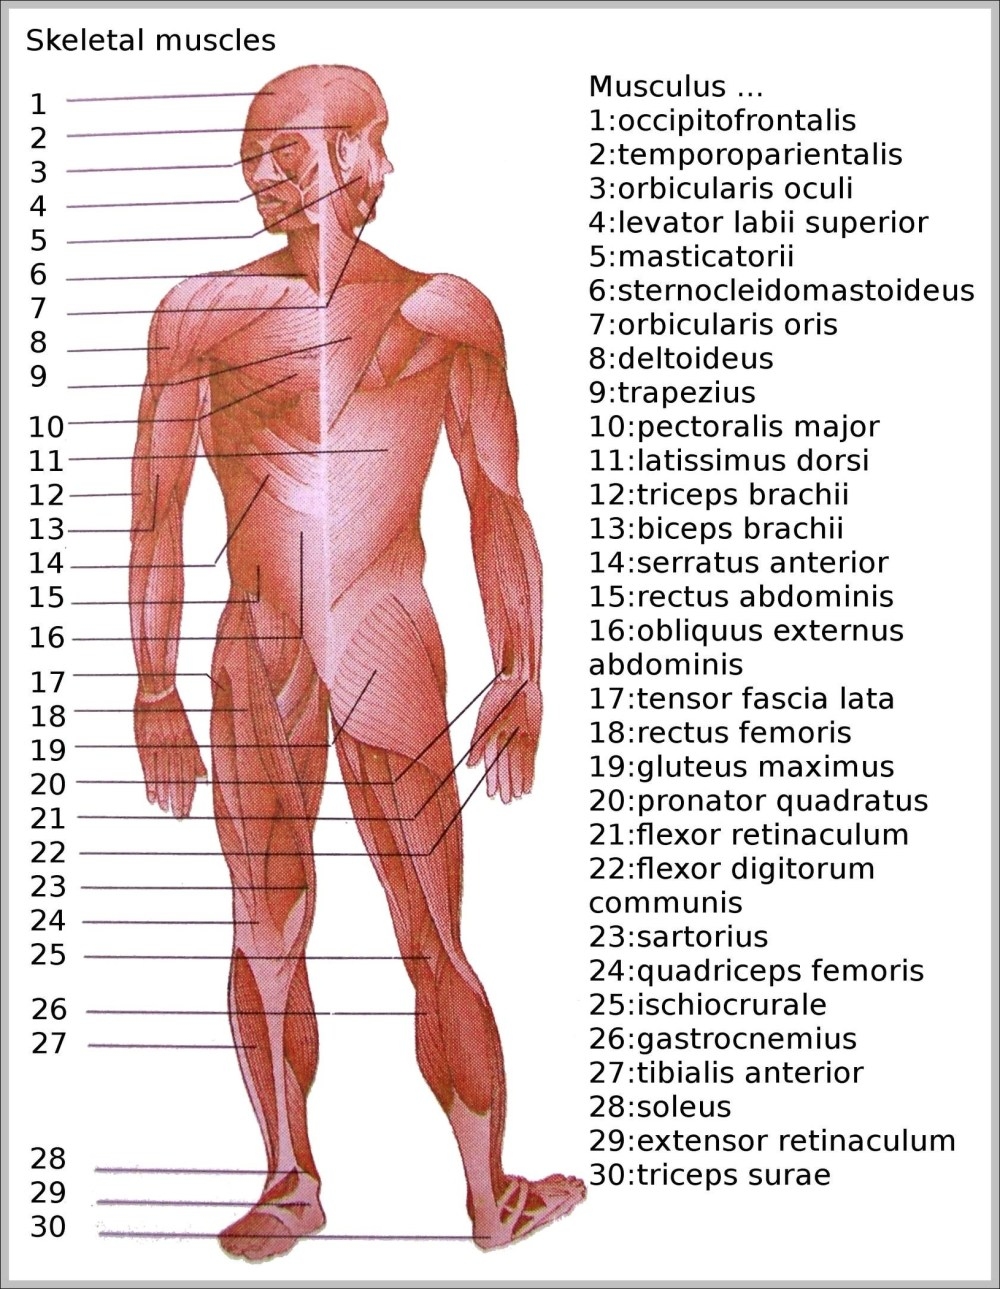 medium resolution of skeletal images anatomy system human body anatomy diagram andskeletal muscle diagram